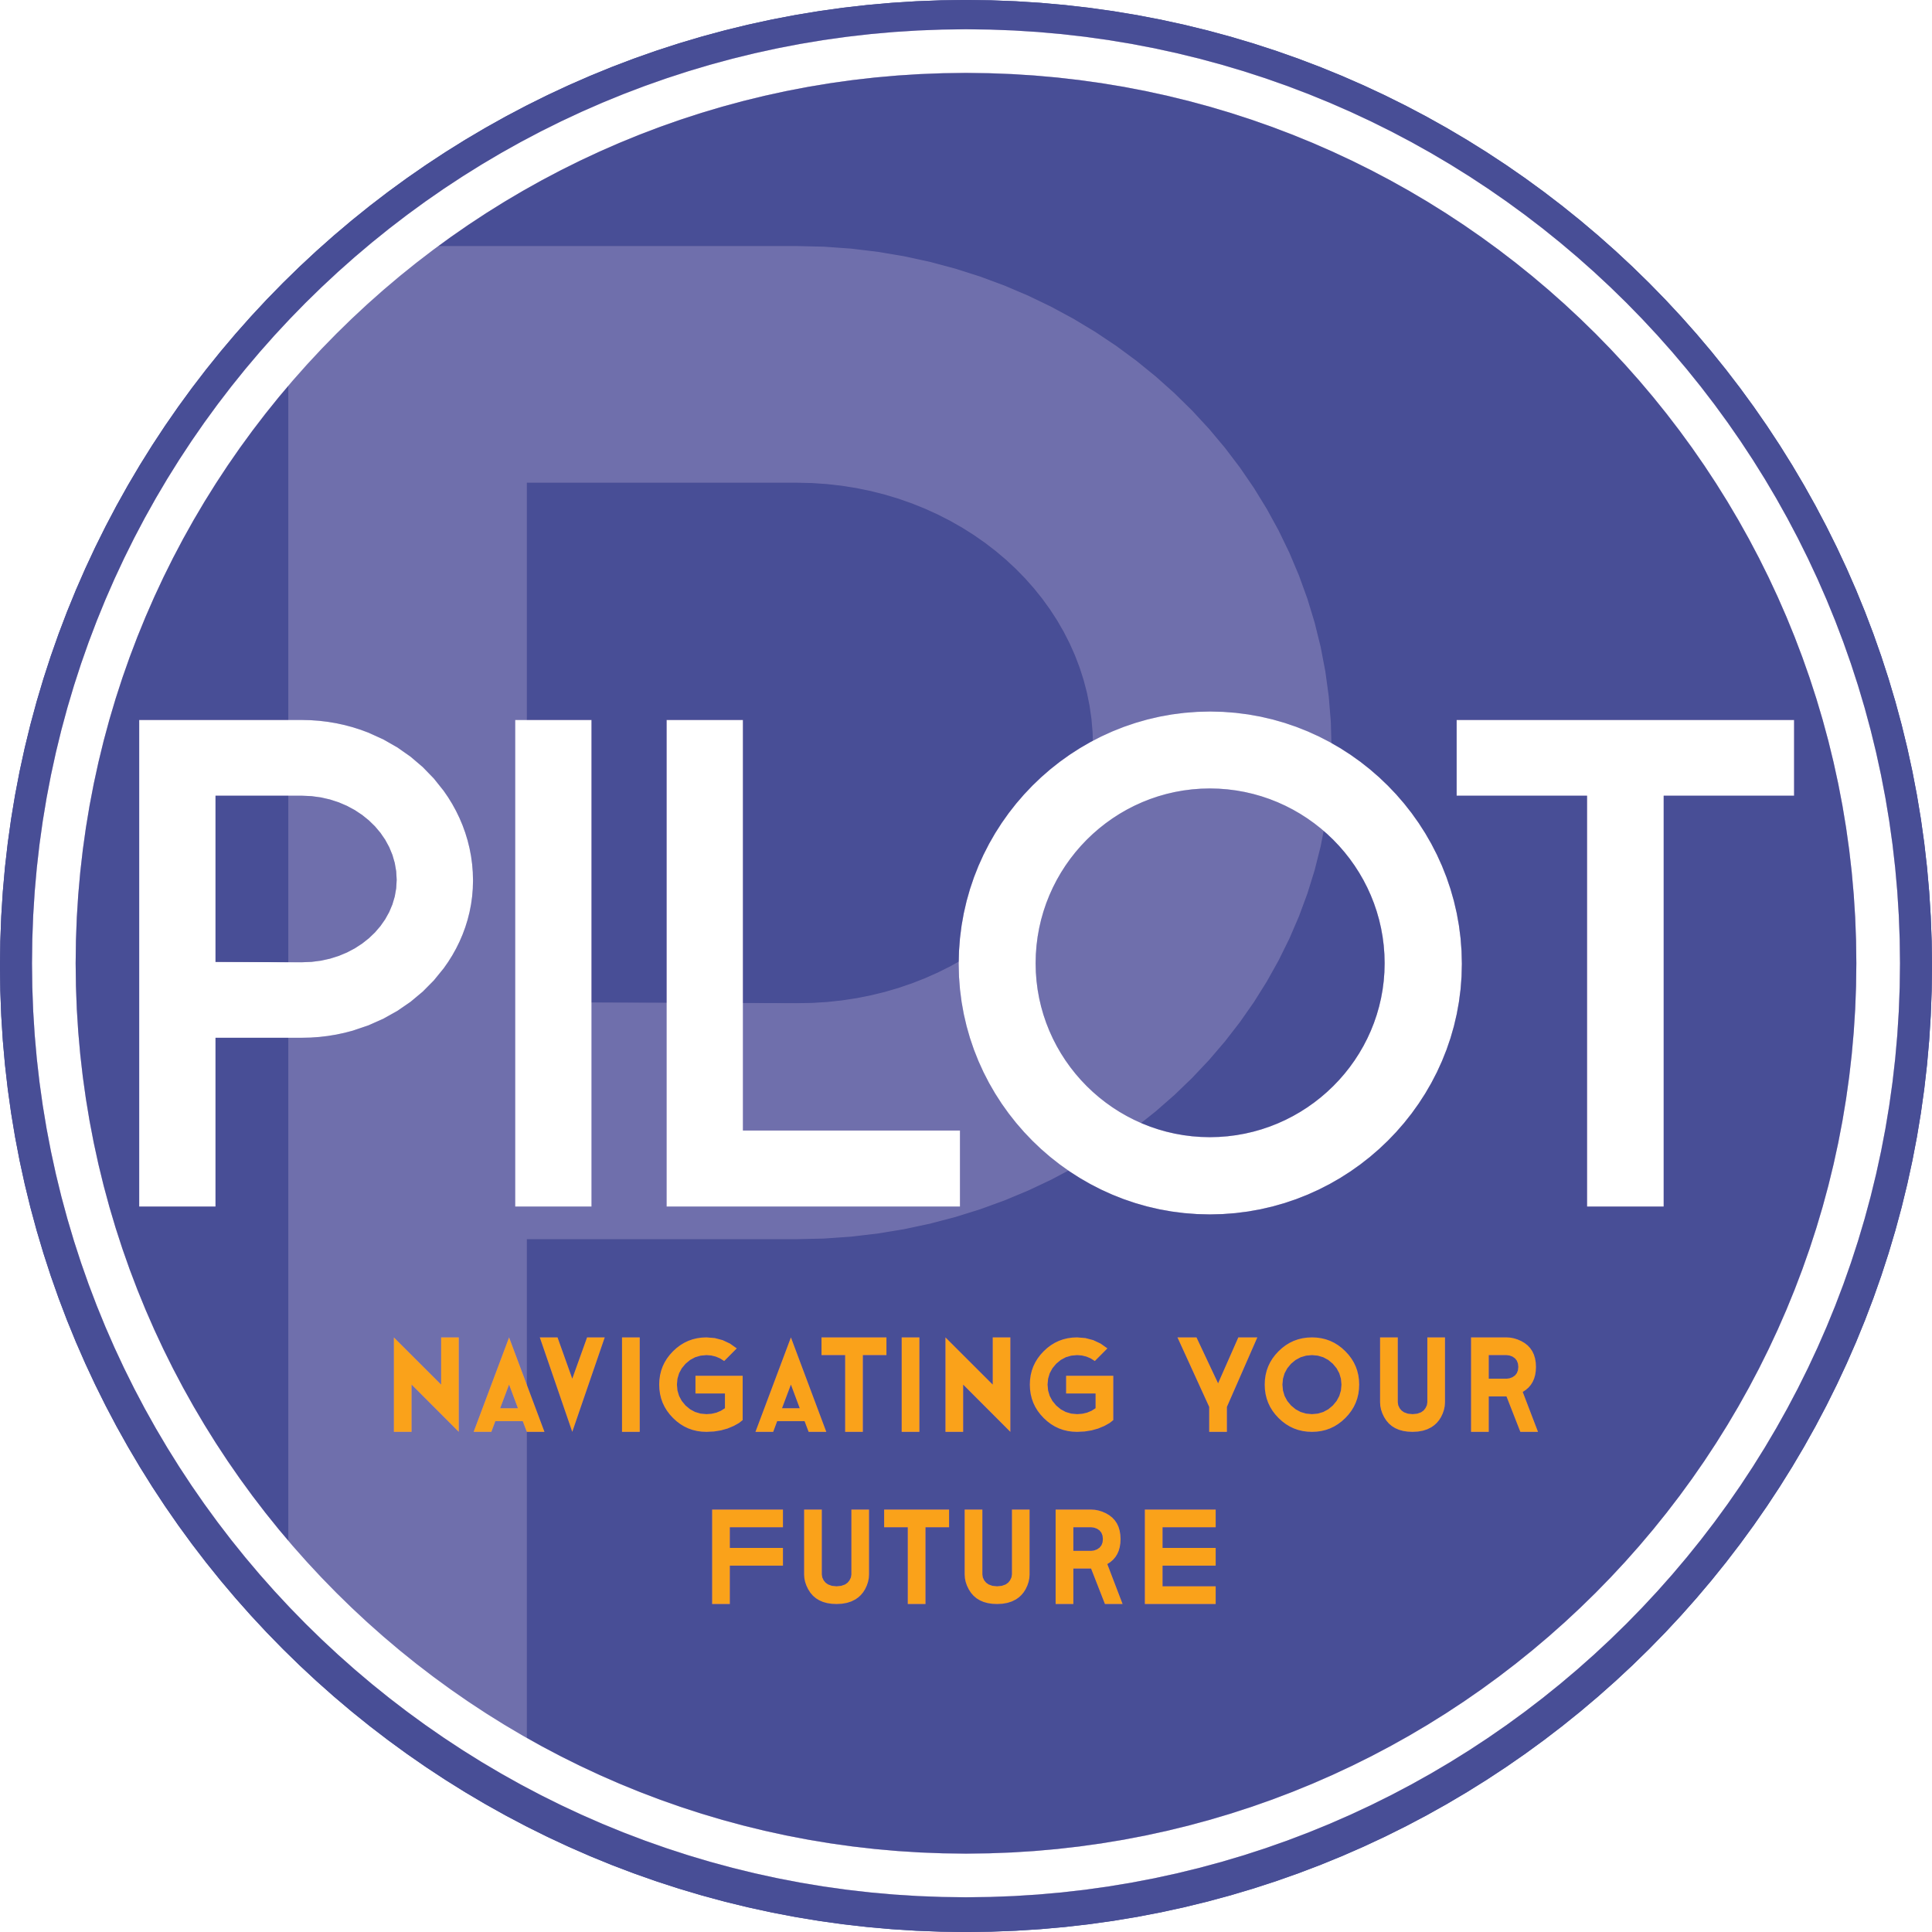 Pilot IMS Logo, National Training Provider @ PilotIMS